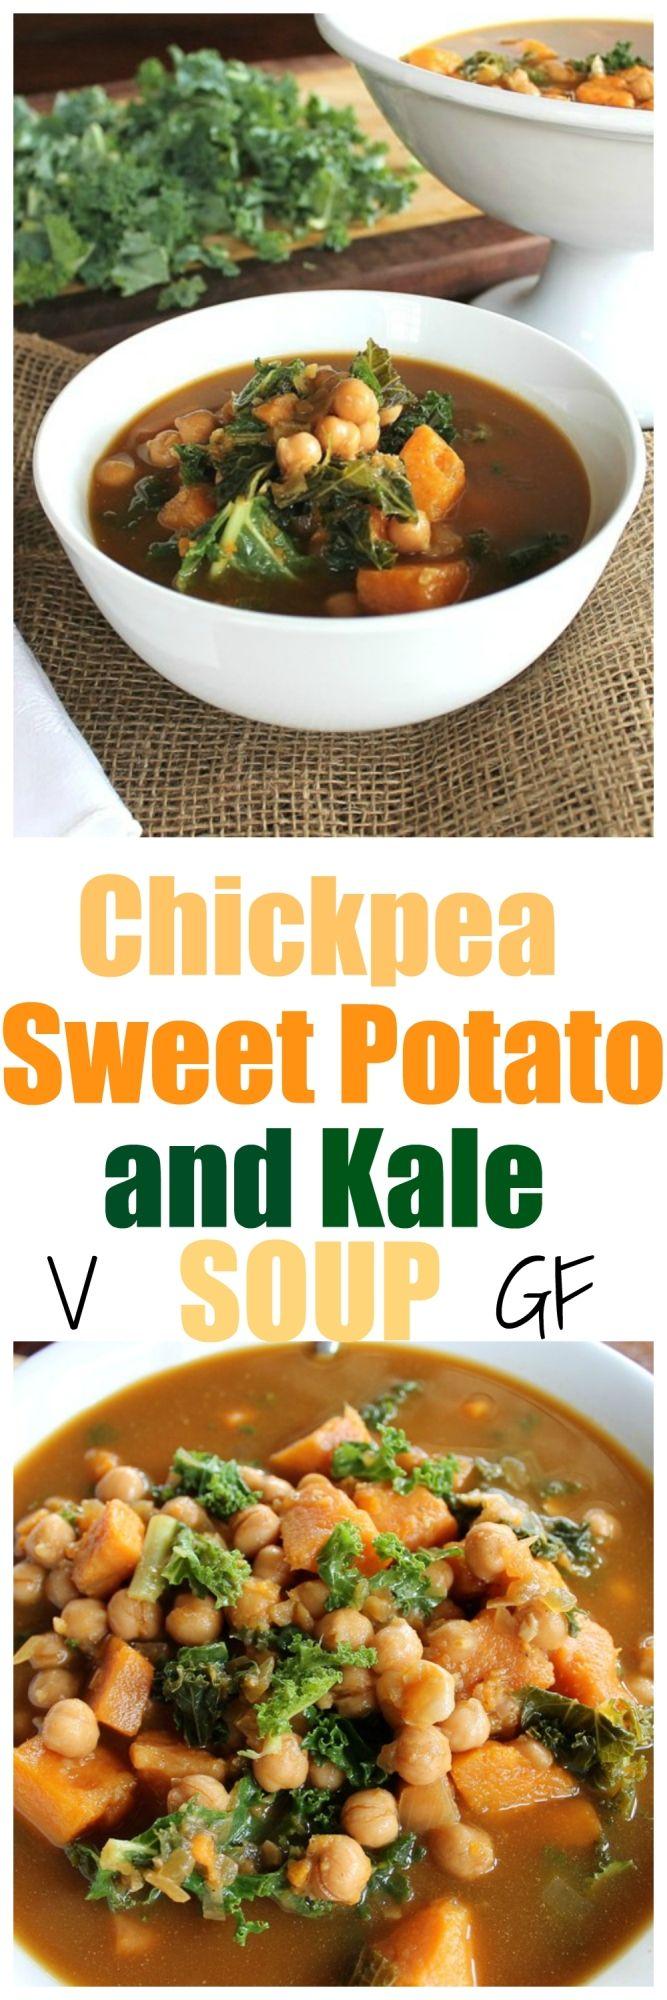 Chickpea, Sweet Potato and Kale Soup. So easy, full of flavor, protein, goodness and just a few ingredients. | http://TheVegan8.com | #vegan #glutenfree #oilfree #soup #chickpea #sweetpotato #kale